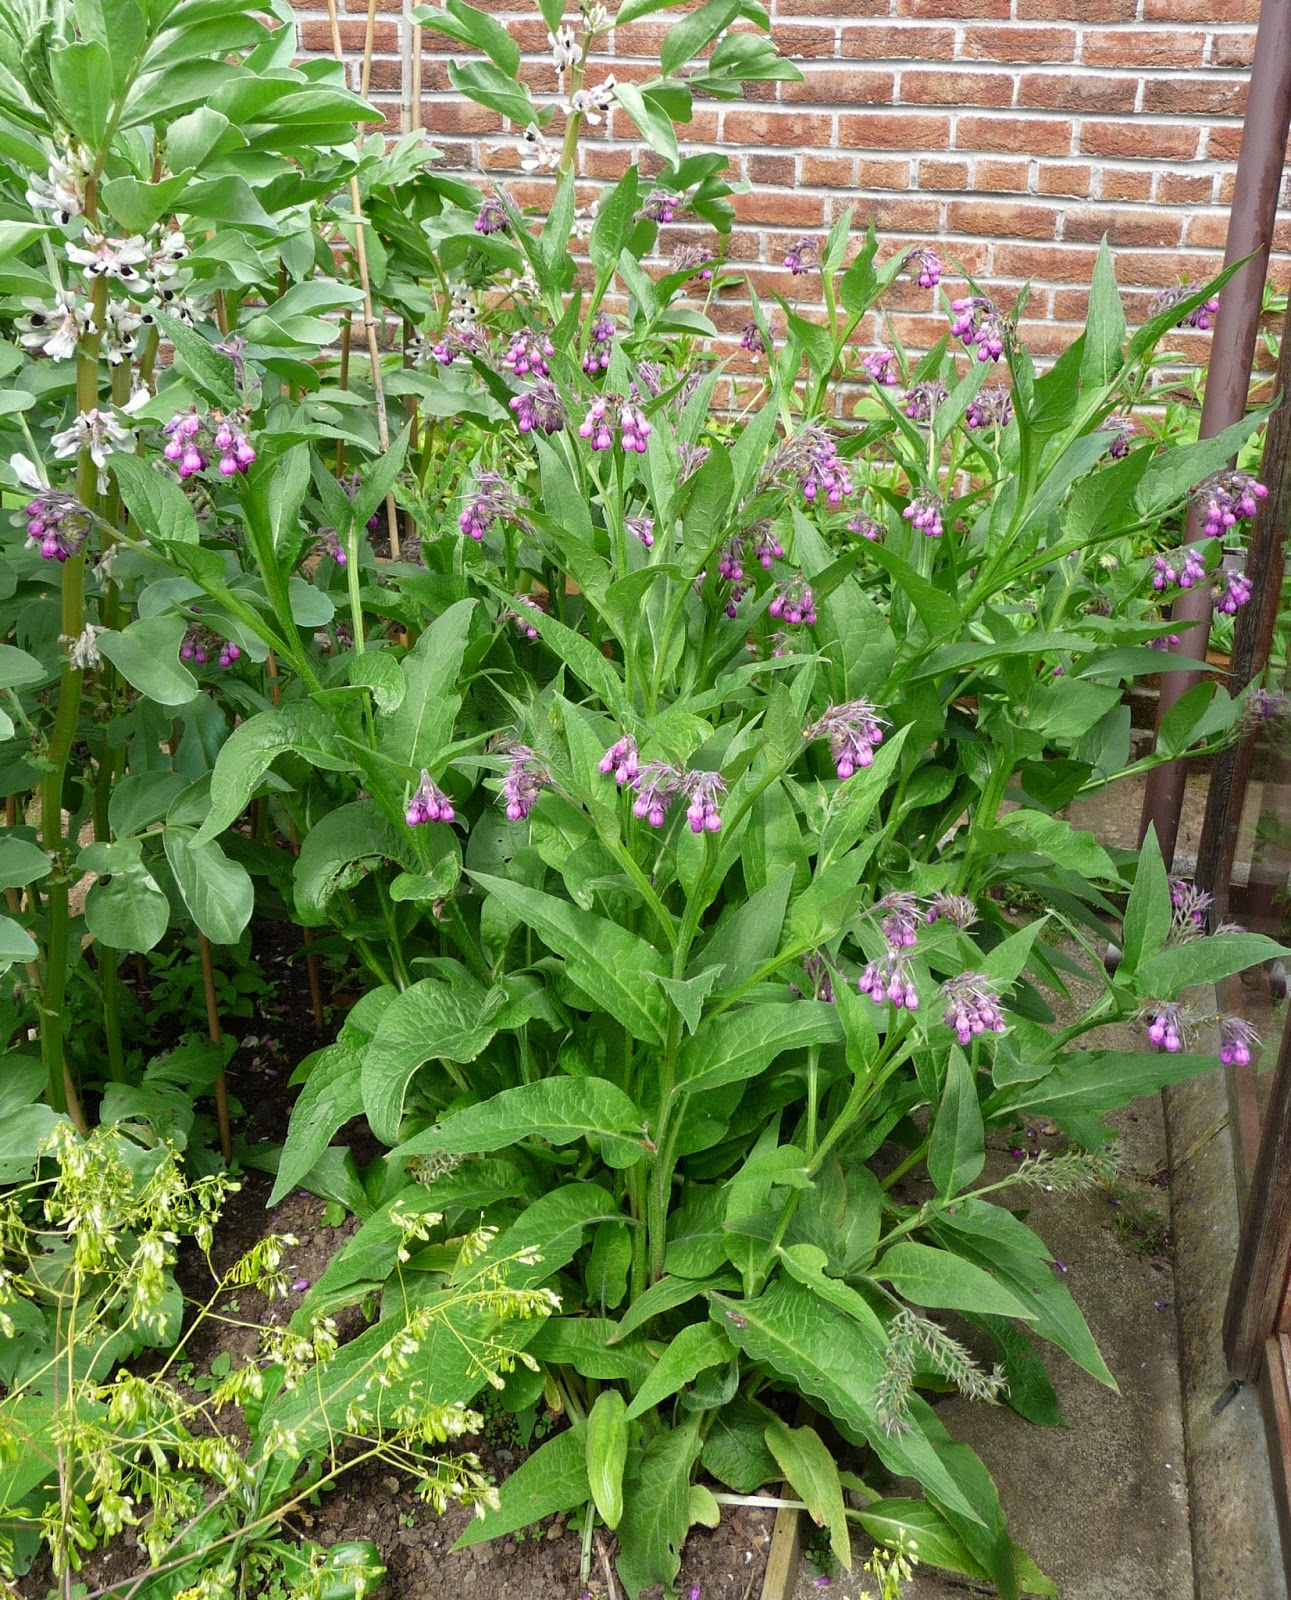 comfrey dating site Comfrey leaf has been used since roman times, dating back thousands of years this herb has been utilized in folk medicine throughout europe and north america and has been widely cultivated.